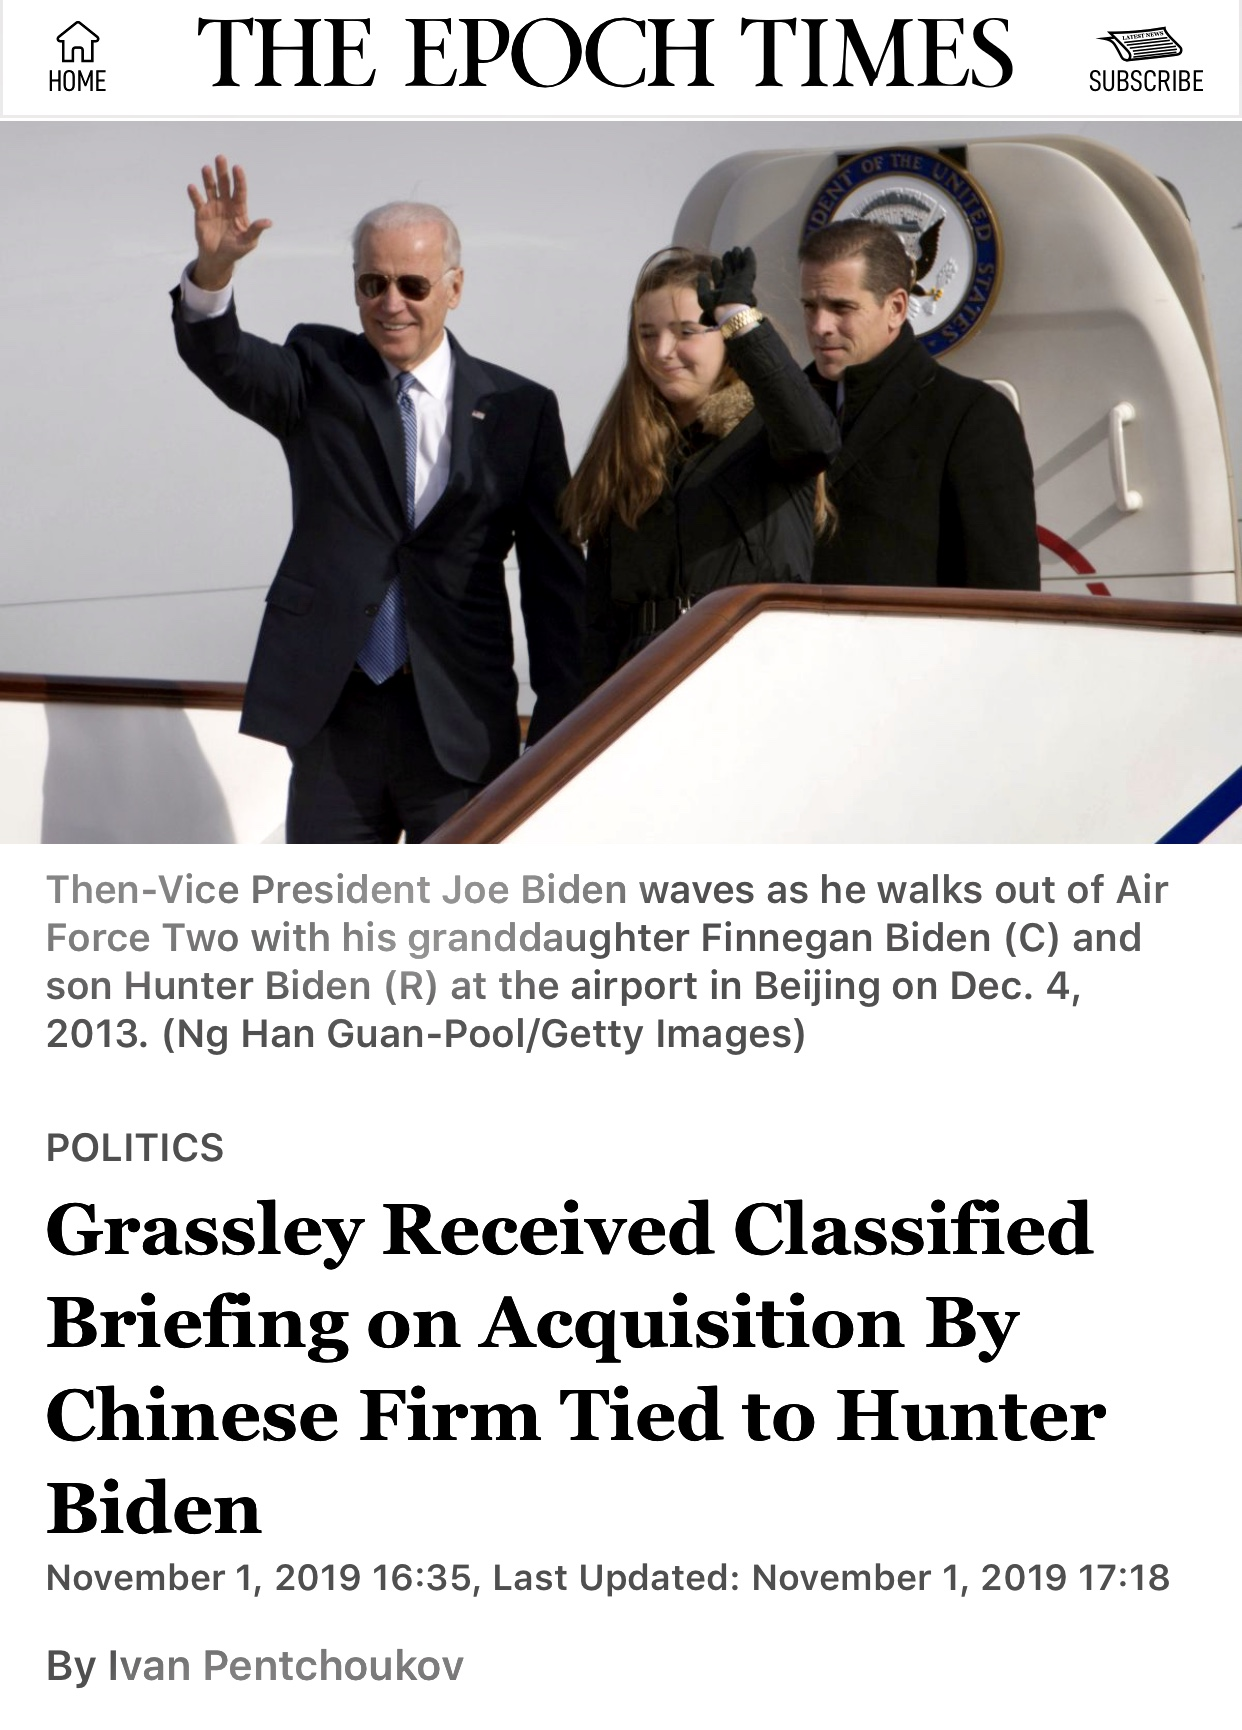 Grassley Received Classified Briefing on Acquisition By Chinese Firm Tied to Hunter Biden